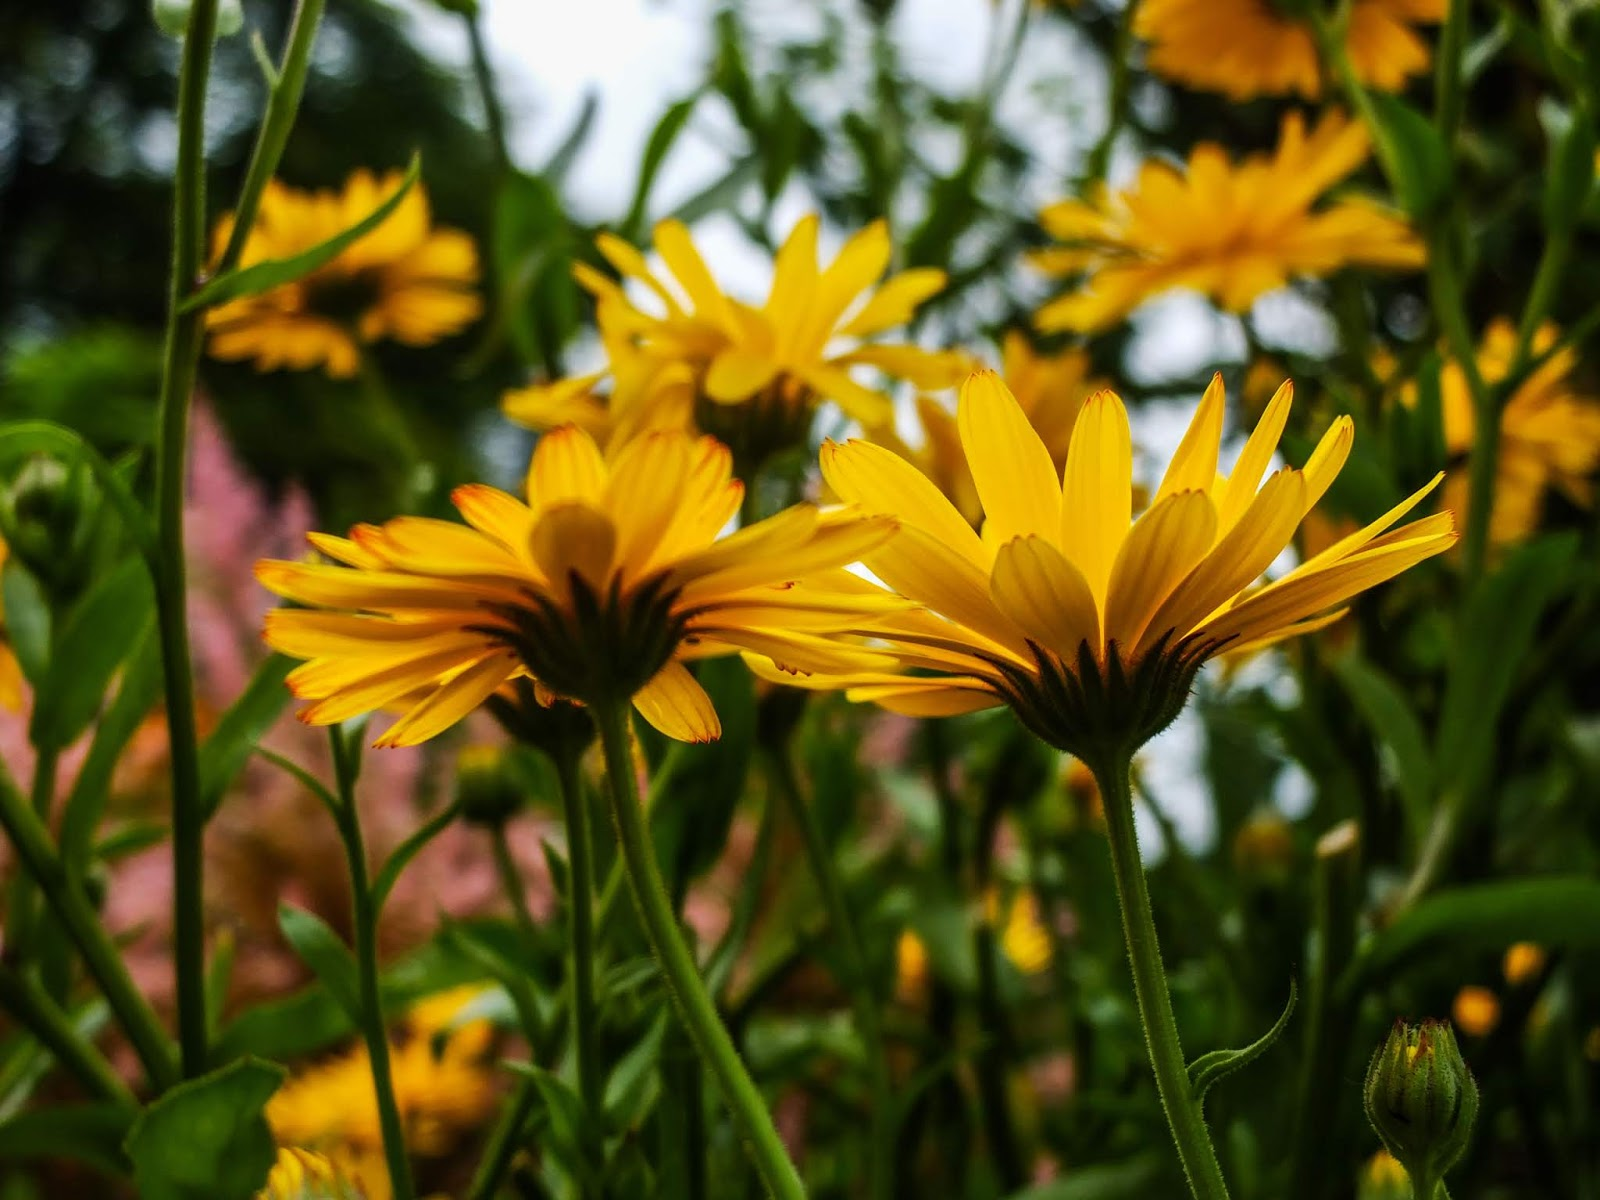 Yellow English Marigolds from the ground up.